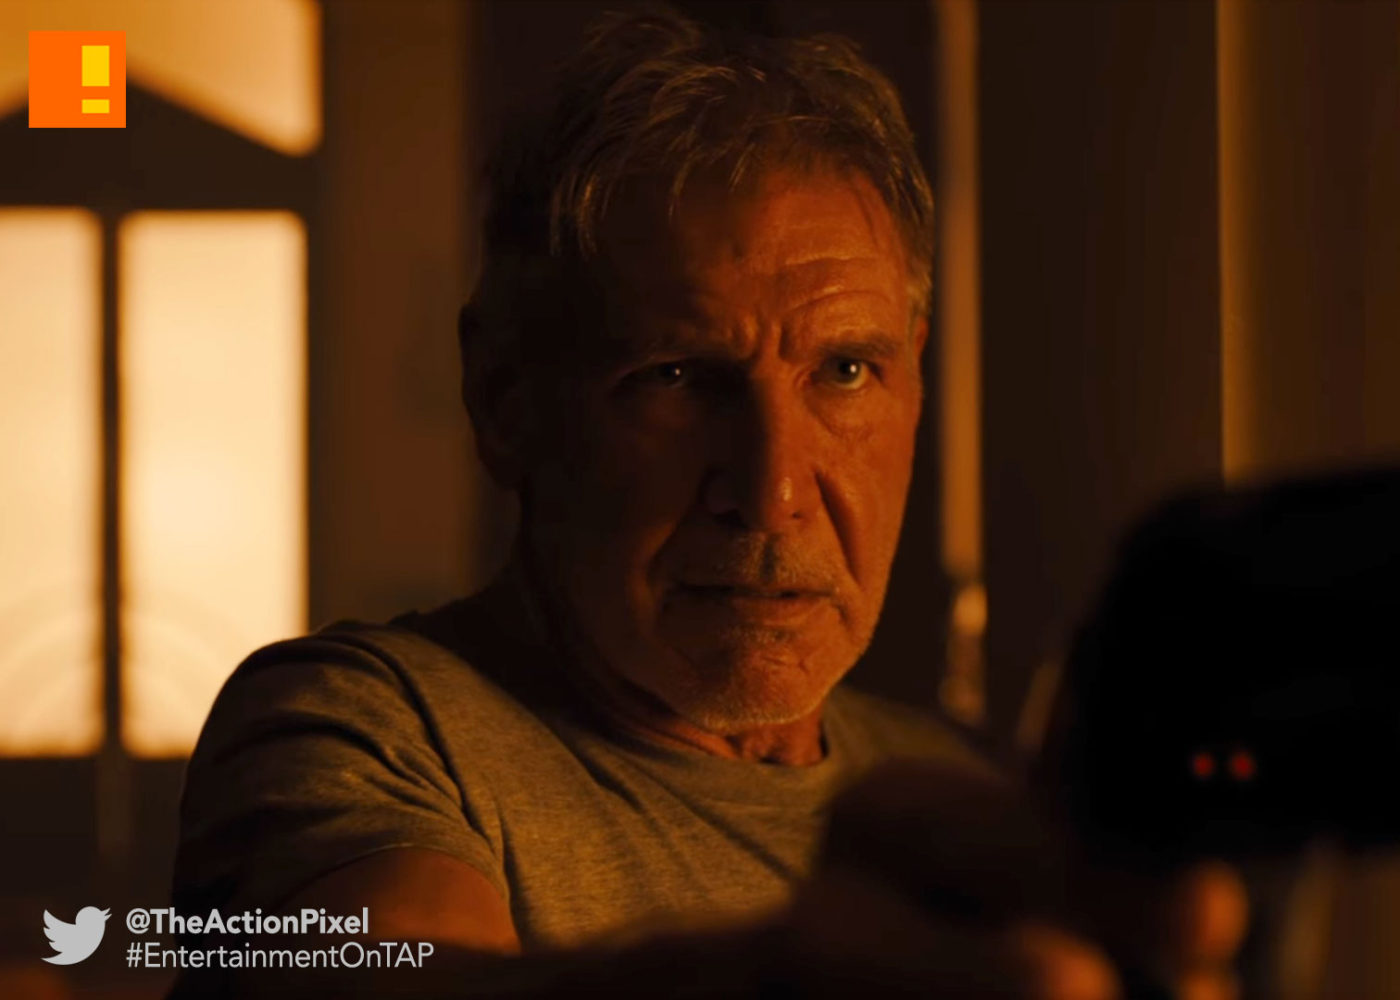 blade runner 2049, ryan gosling, harrison ford, trailer, sony, columbia, icon, warner bros. entertainment , the action pixel, entertainment on tap, rick deckard,